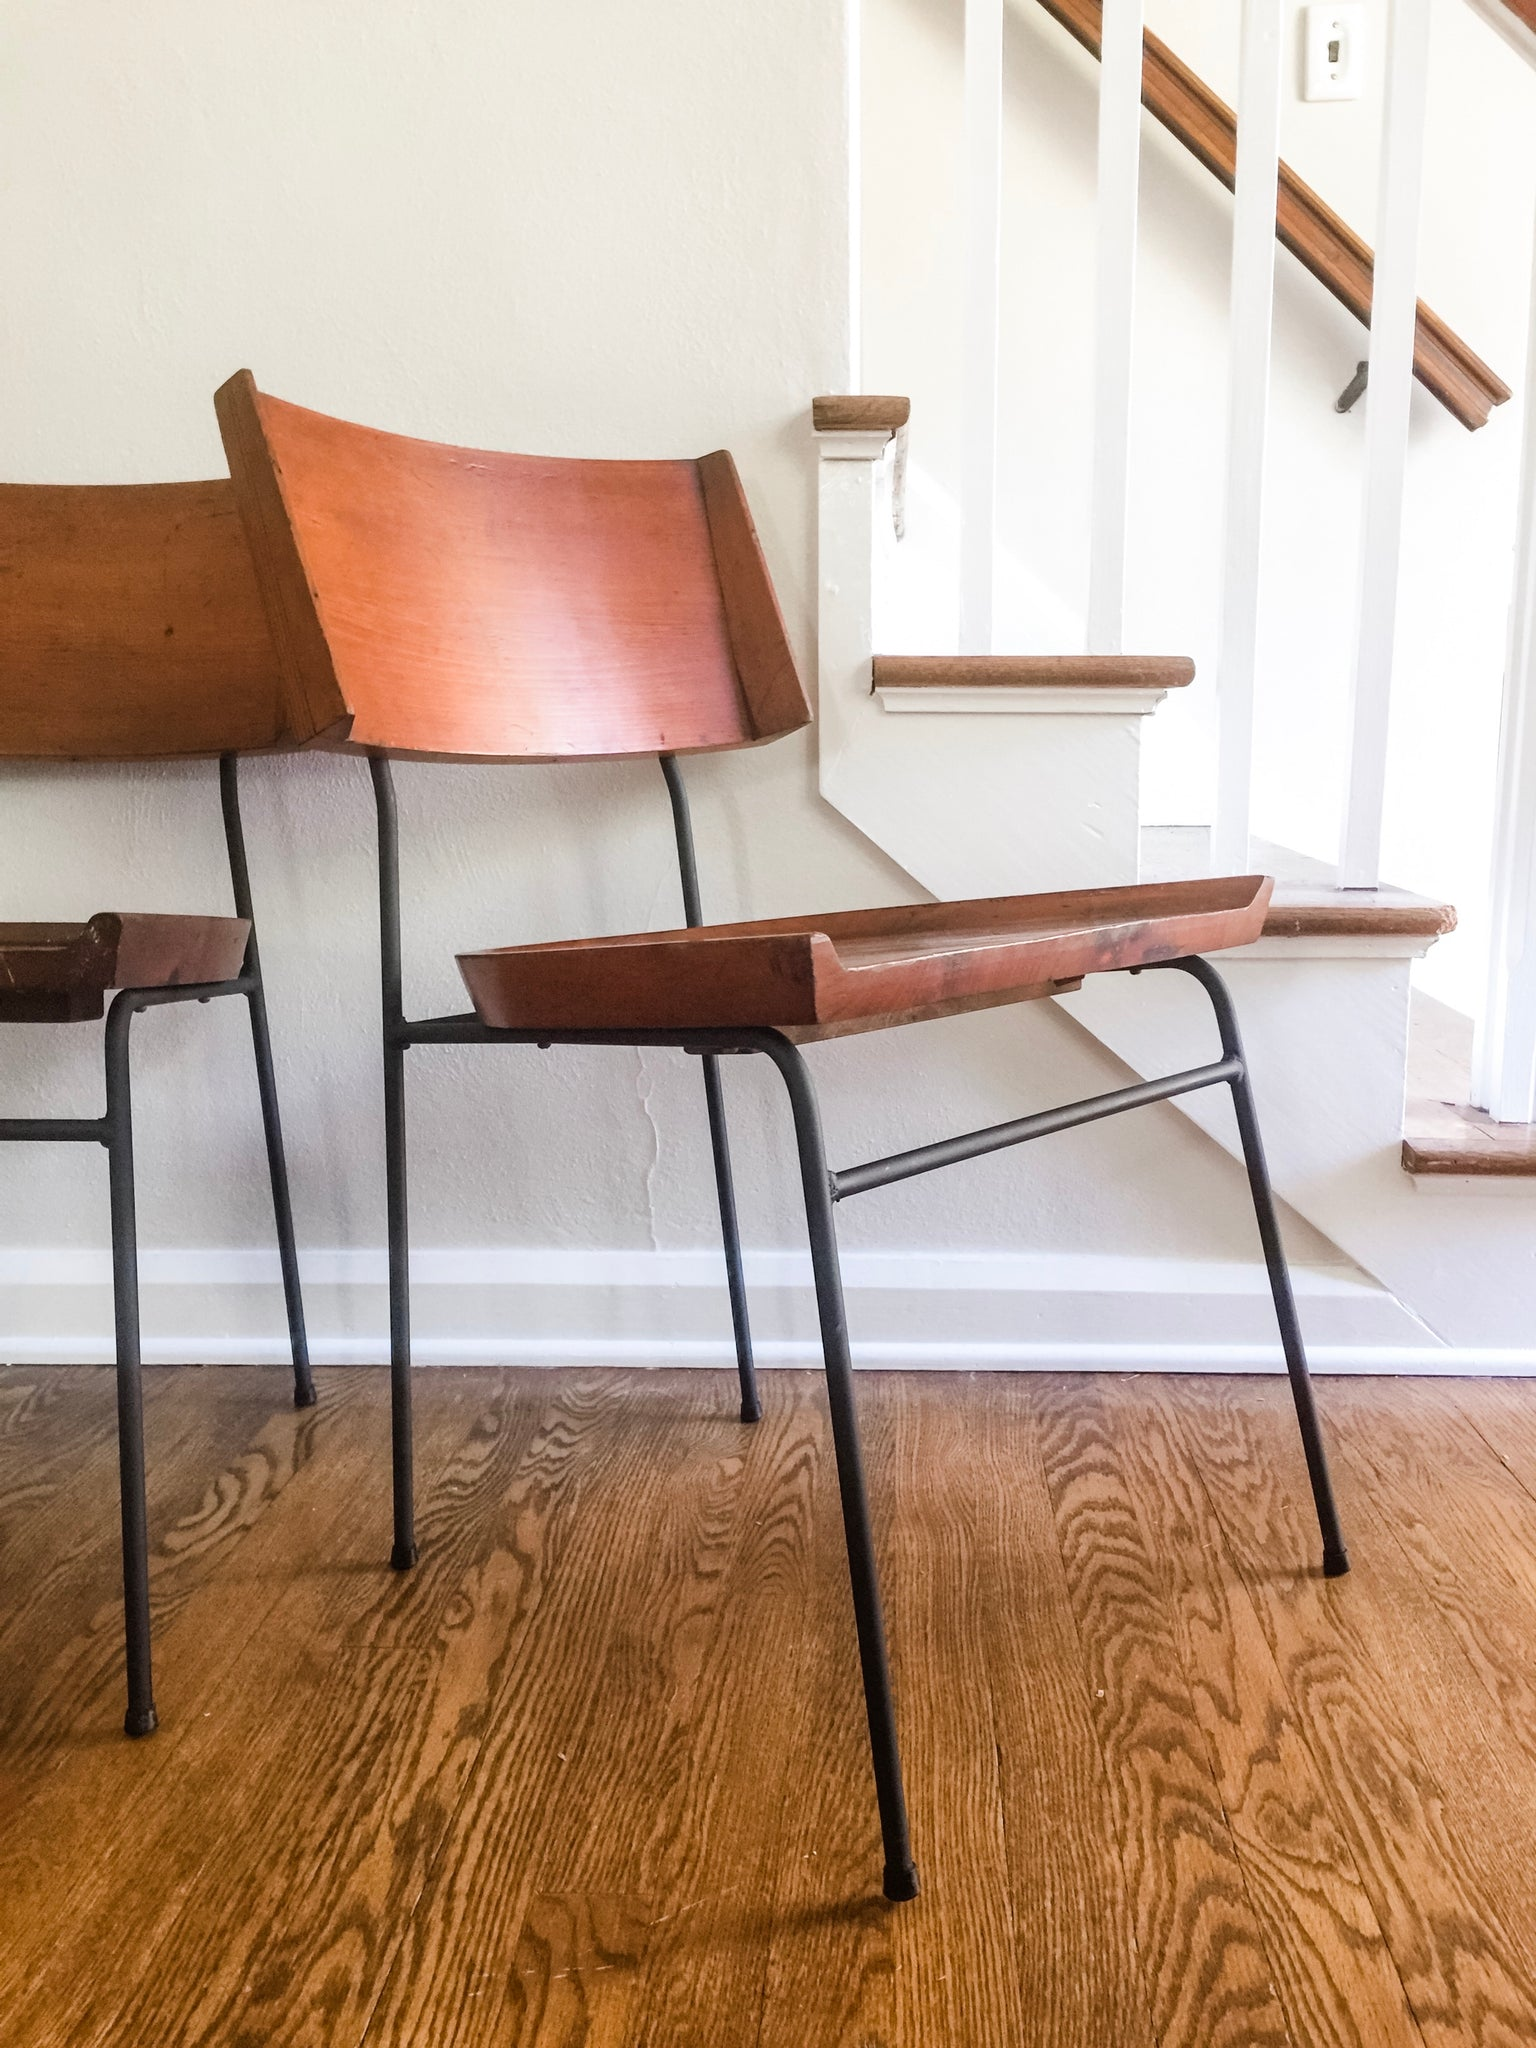 Vintage Midcentury Modern Shovel Style Chairs Imo Paul